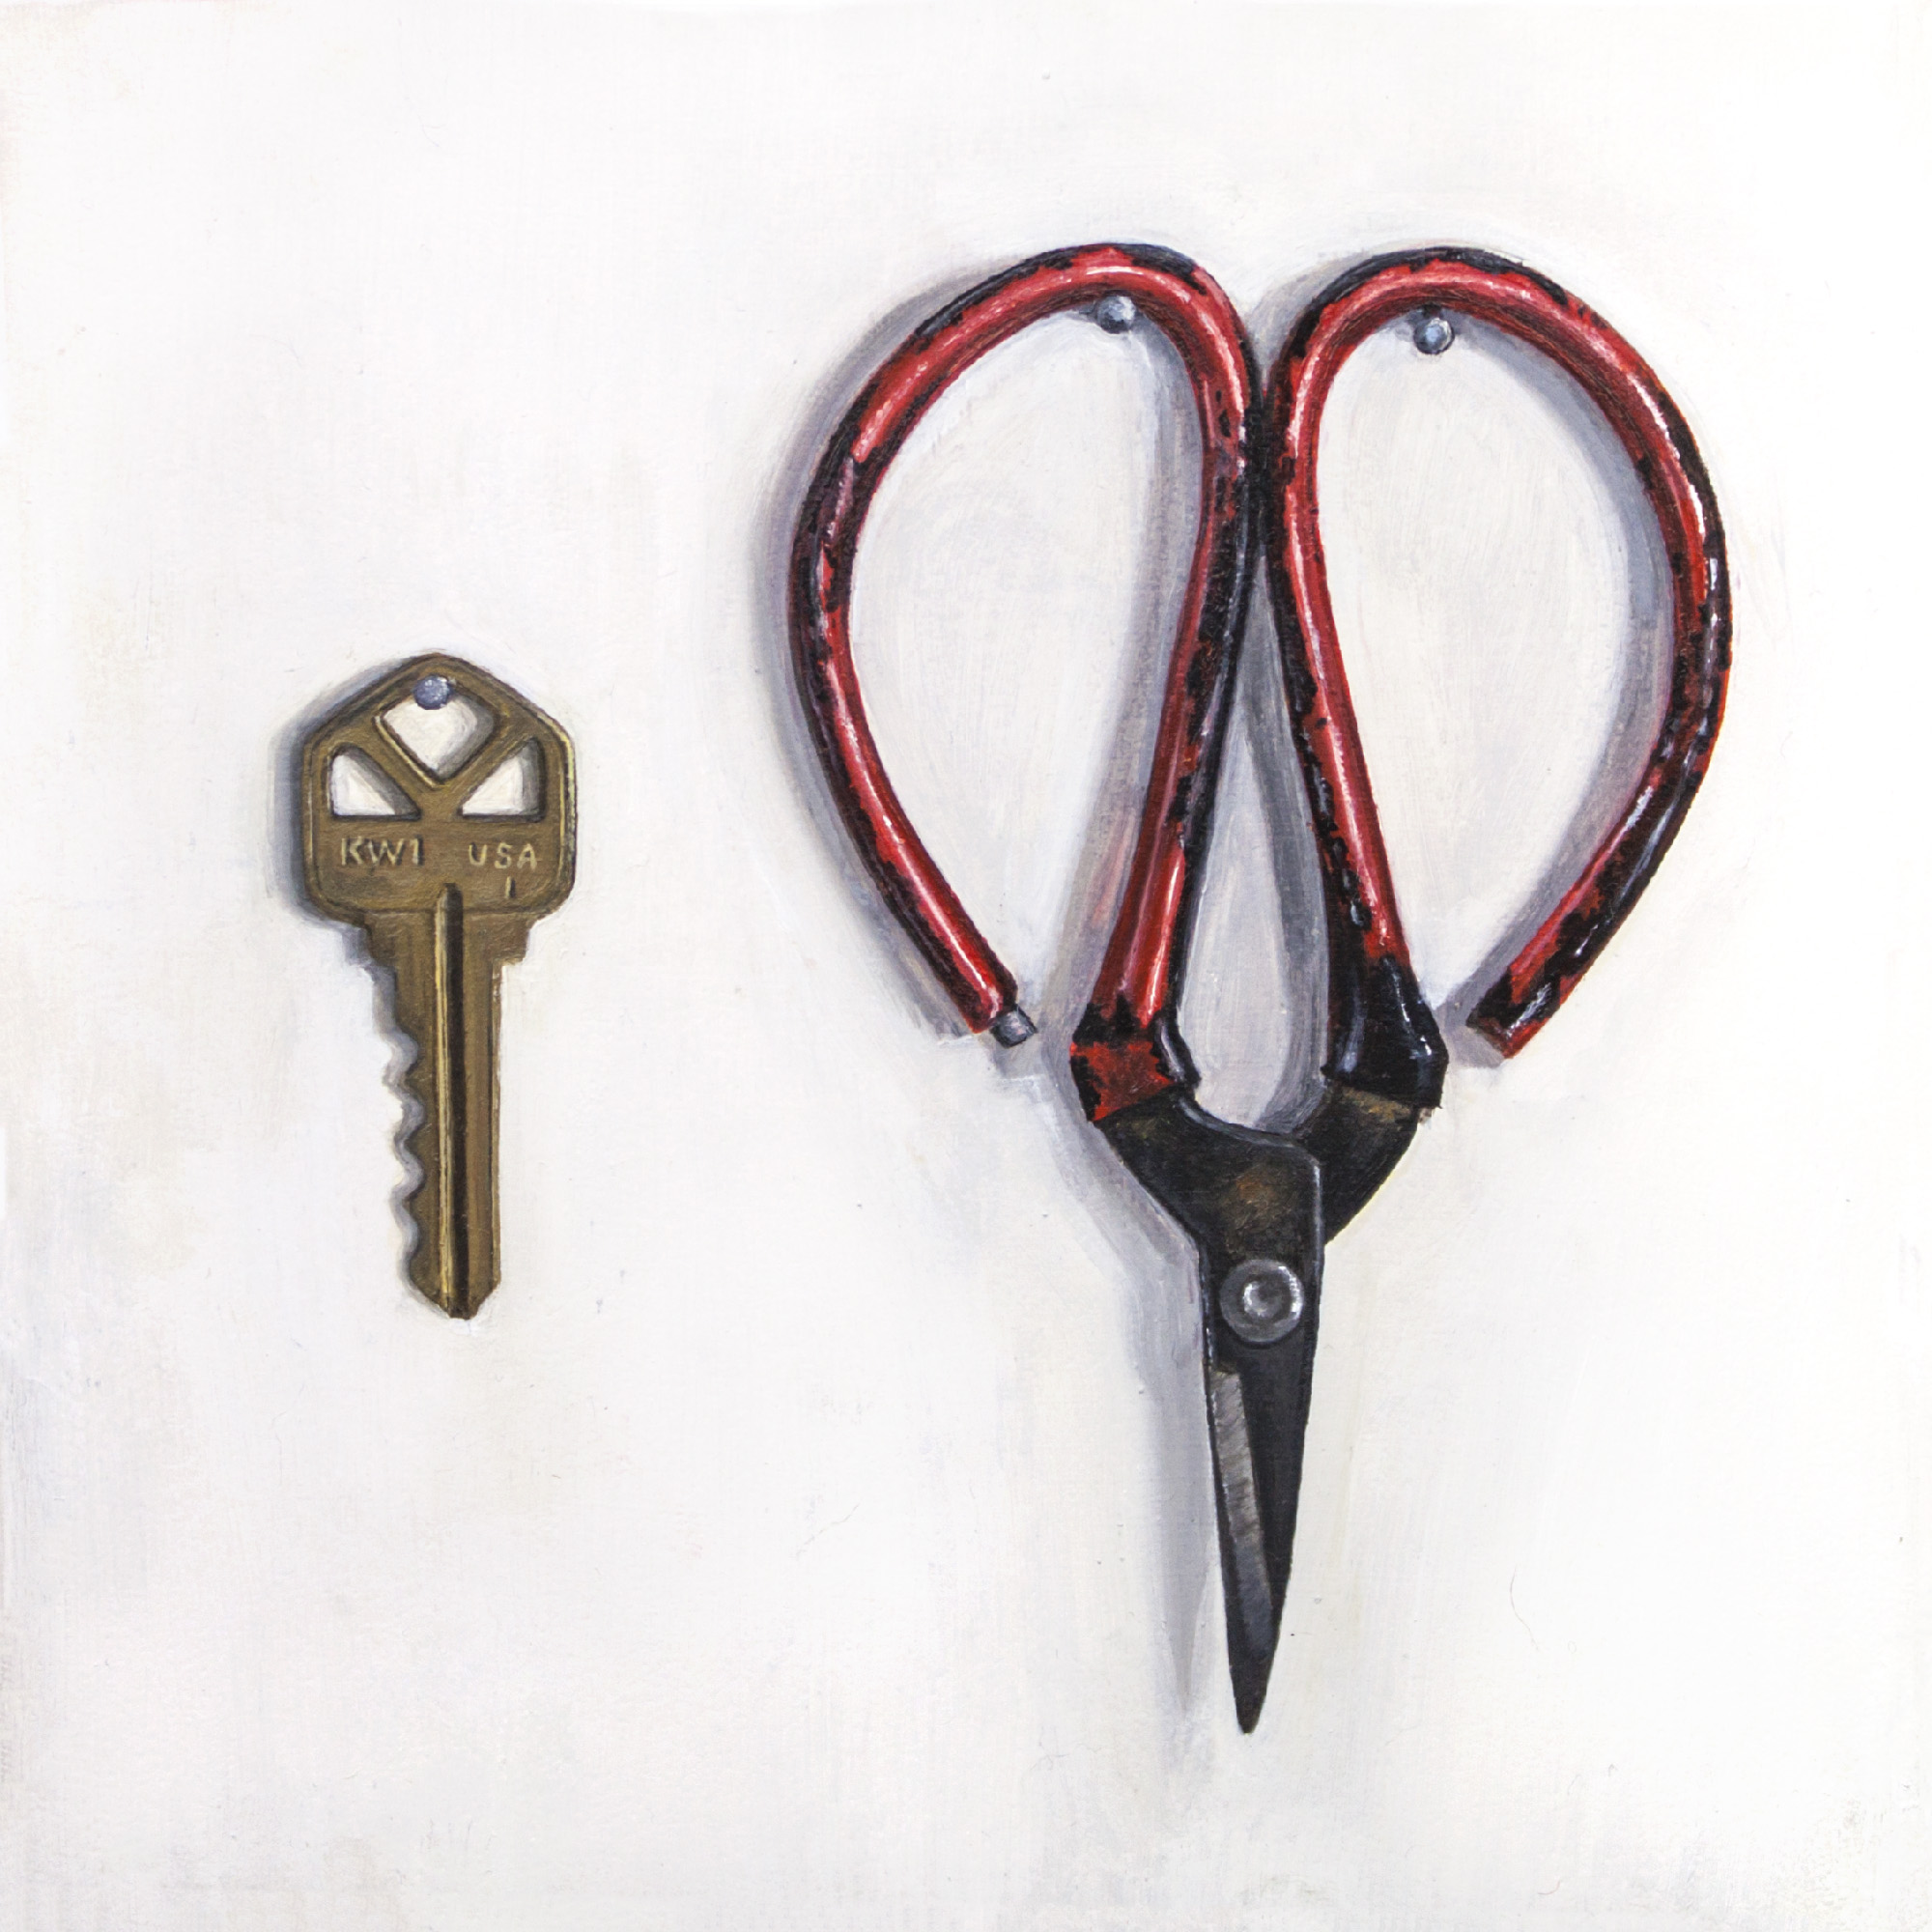 Teeth and Nails: Key and Scissors